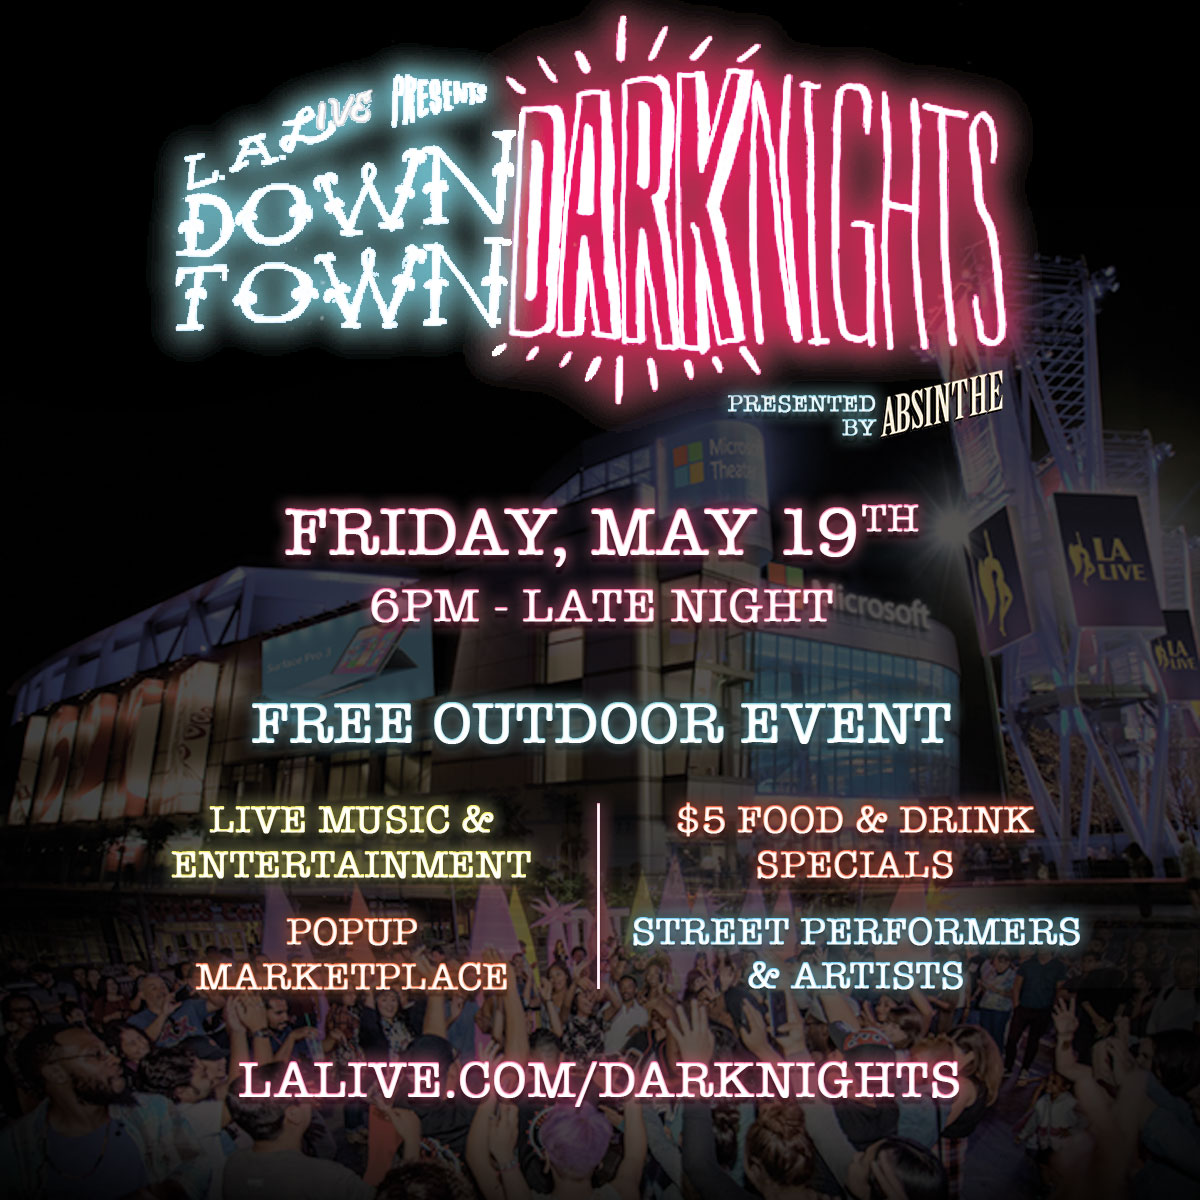 Downtown Dark Nights Returns to LA Live